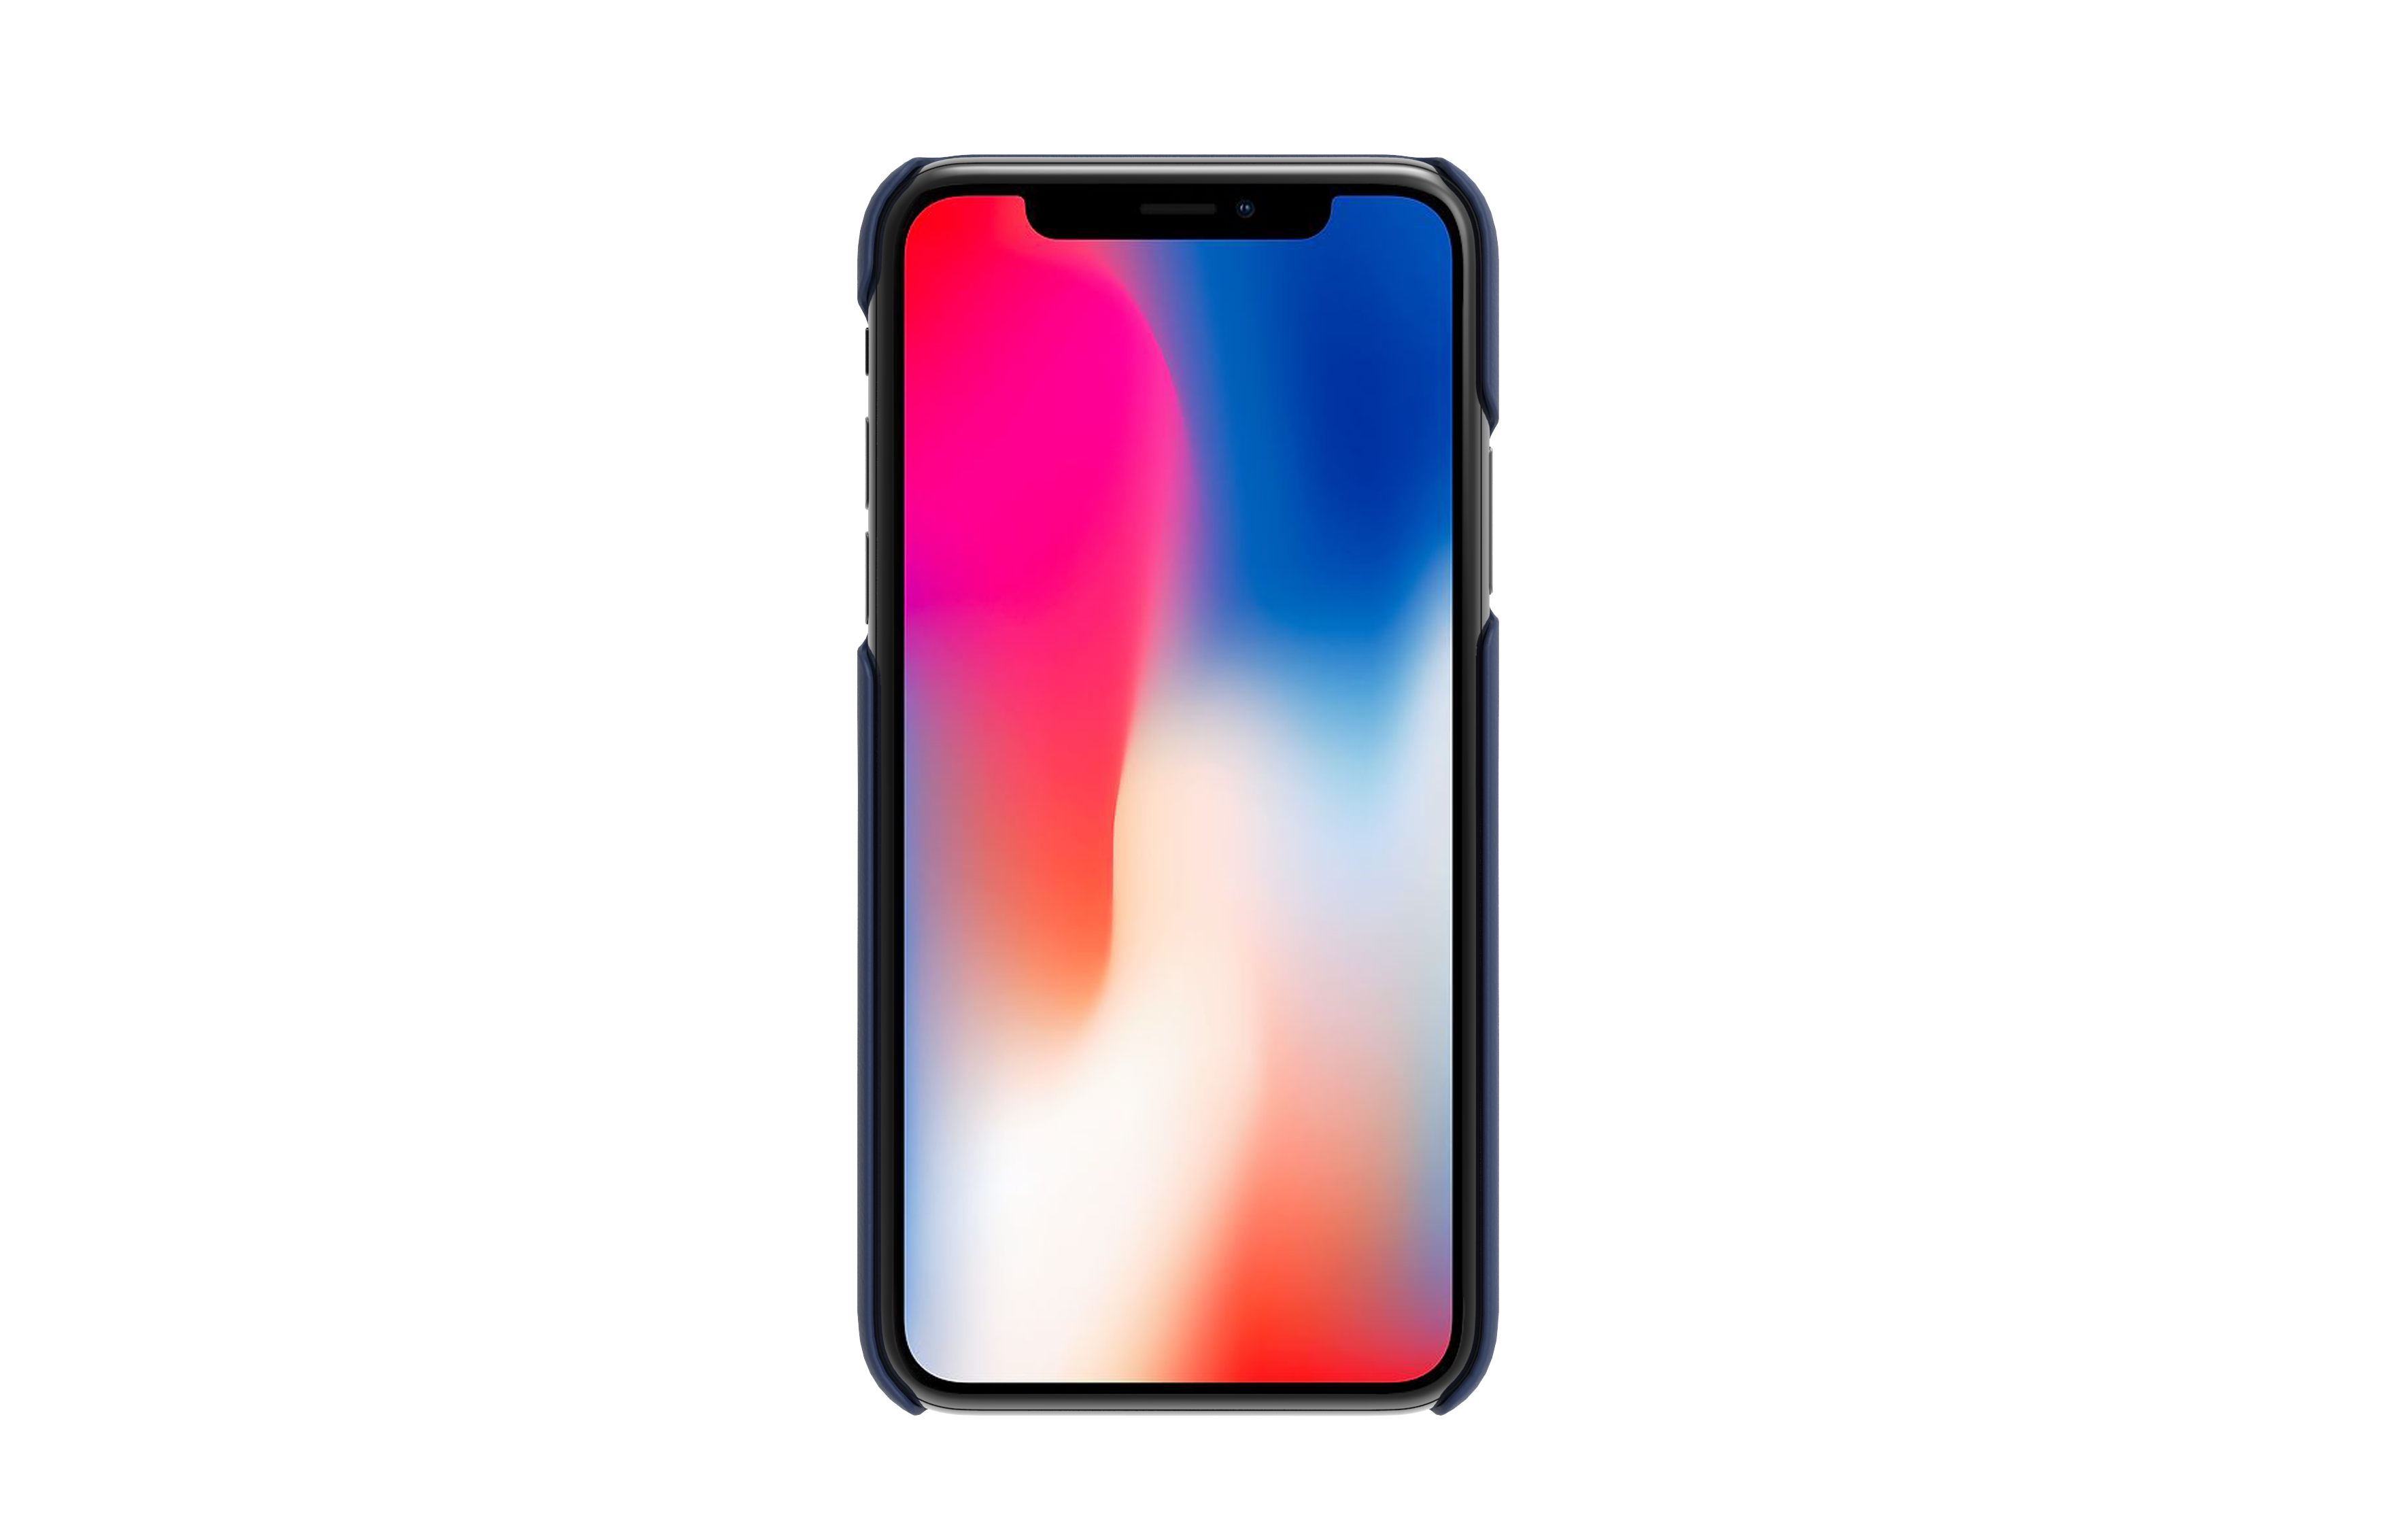 iphoneX blue-2